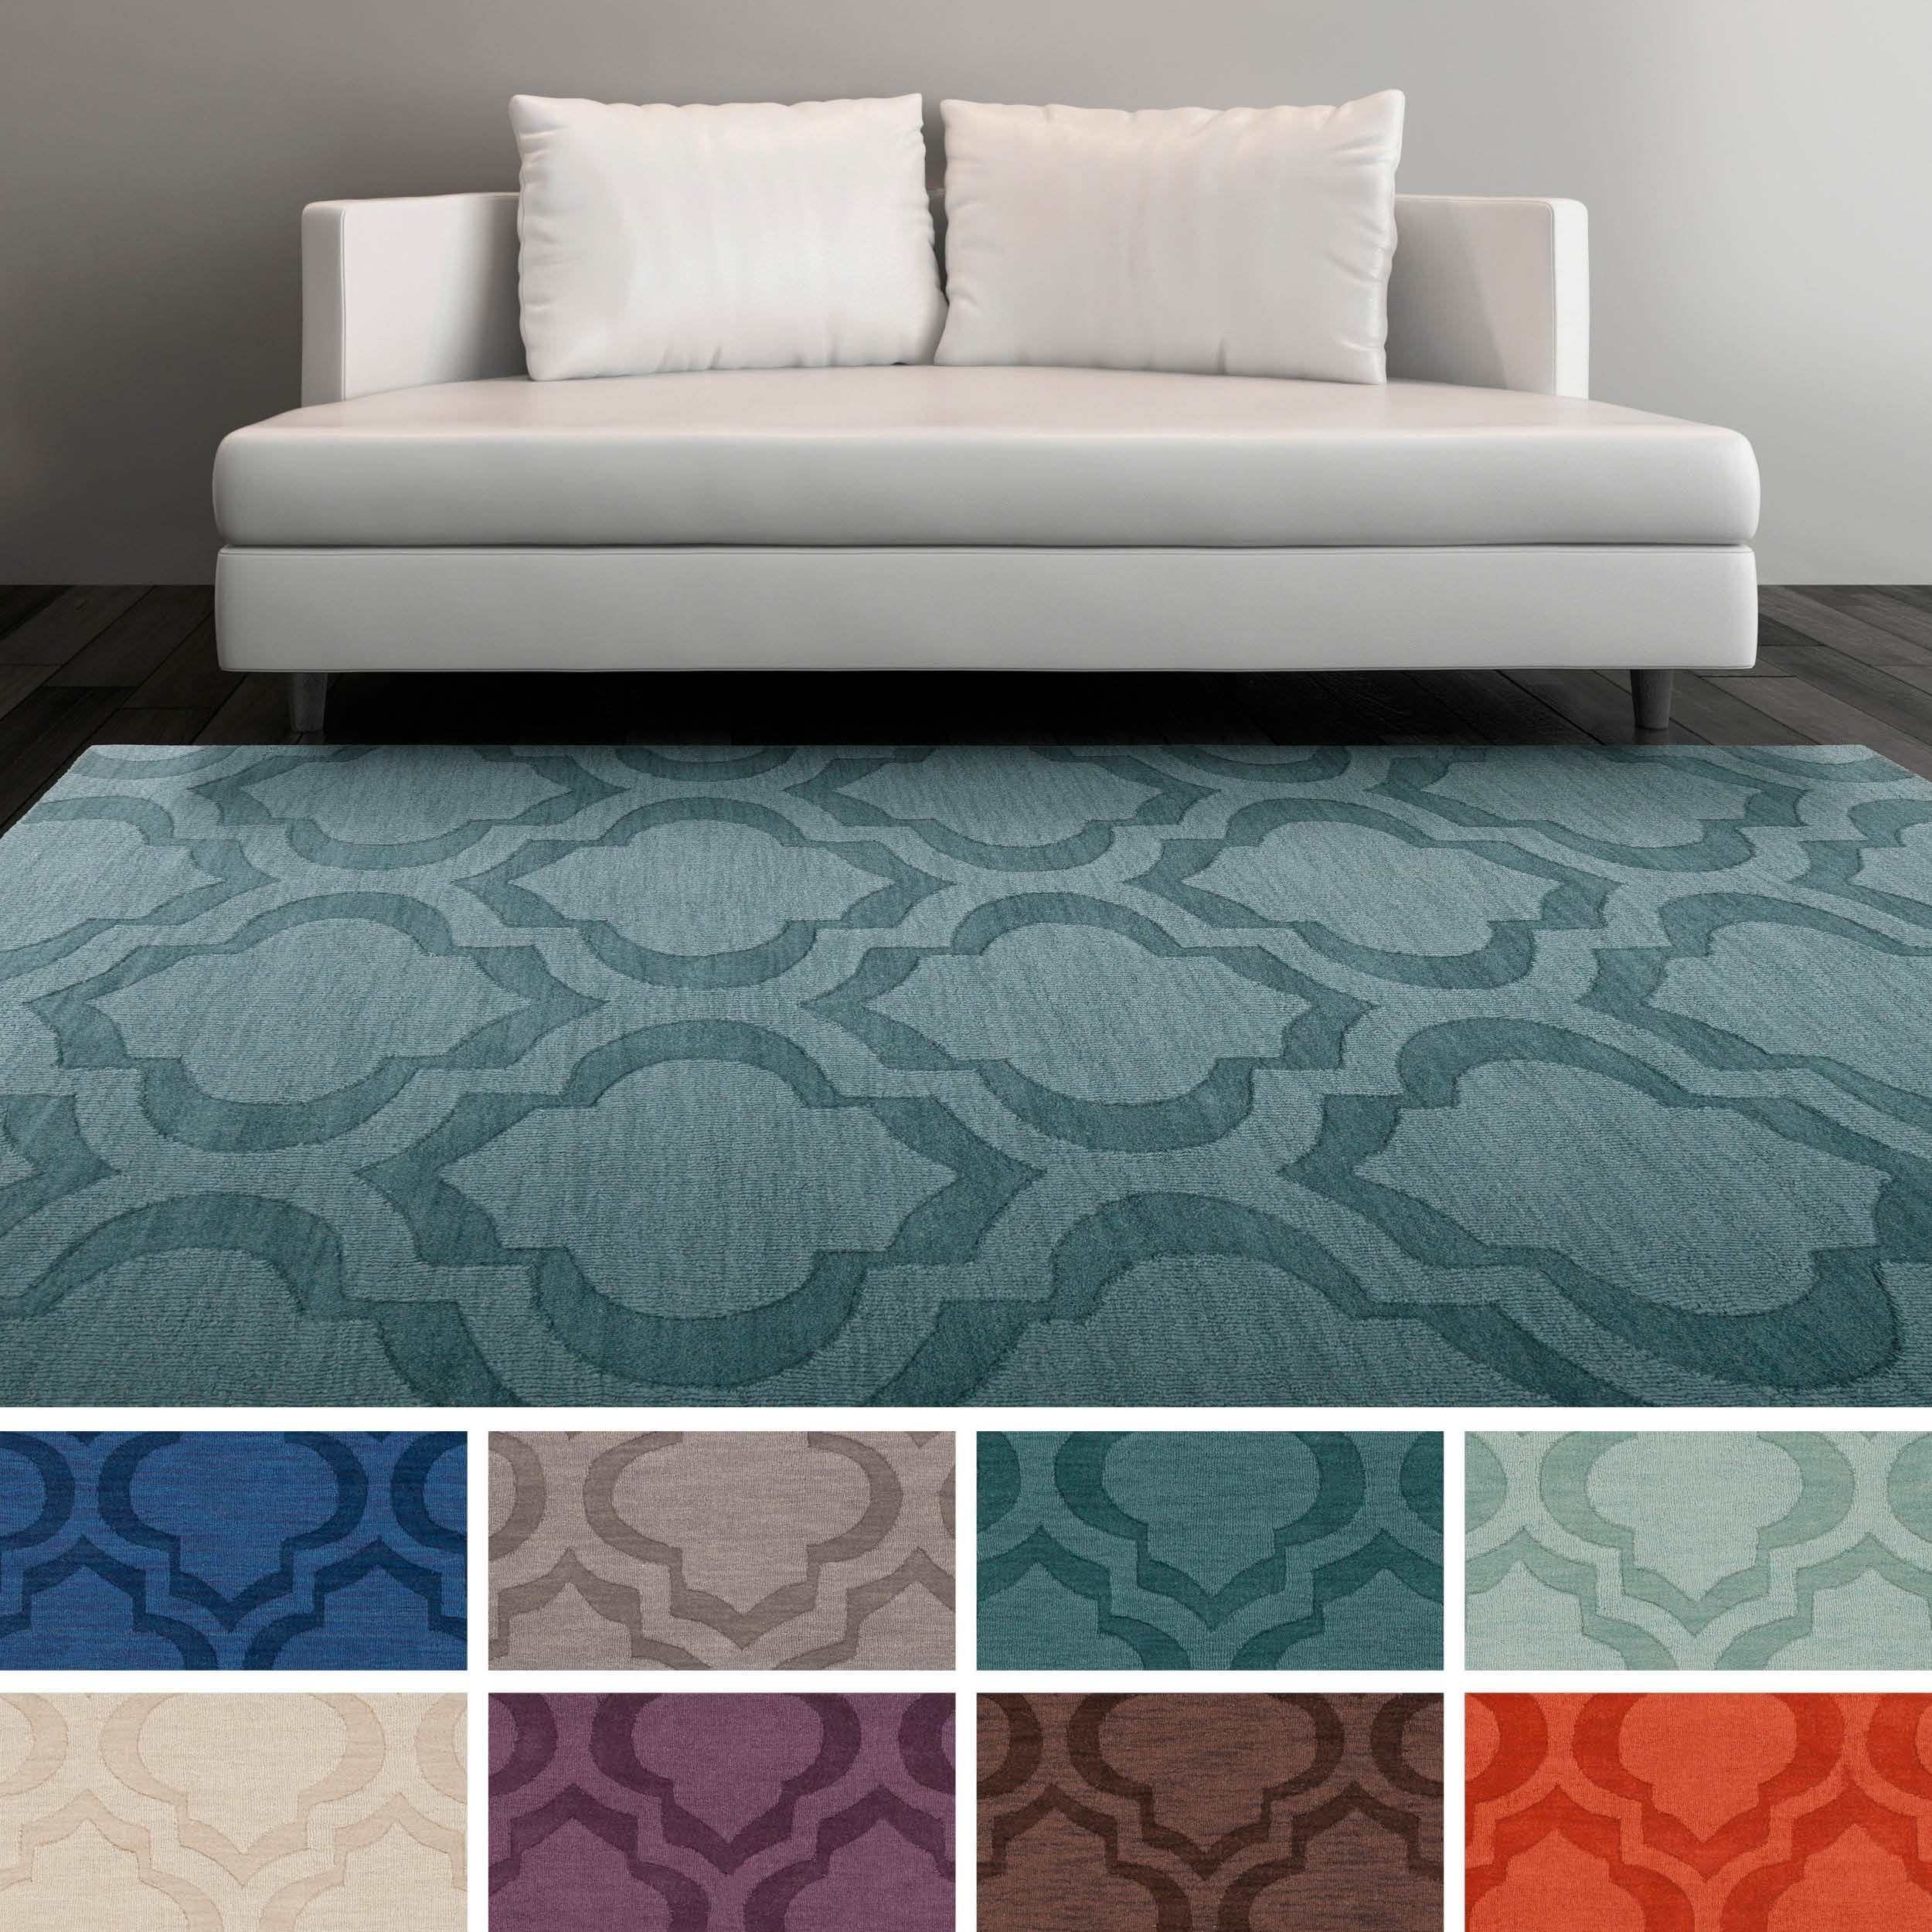 Wool Accent Rugs Overstock Shopping The Best Prices Online